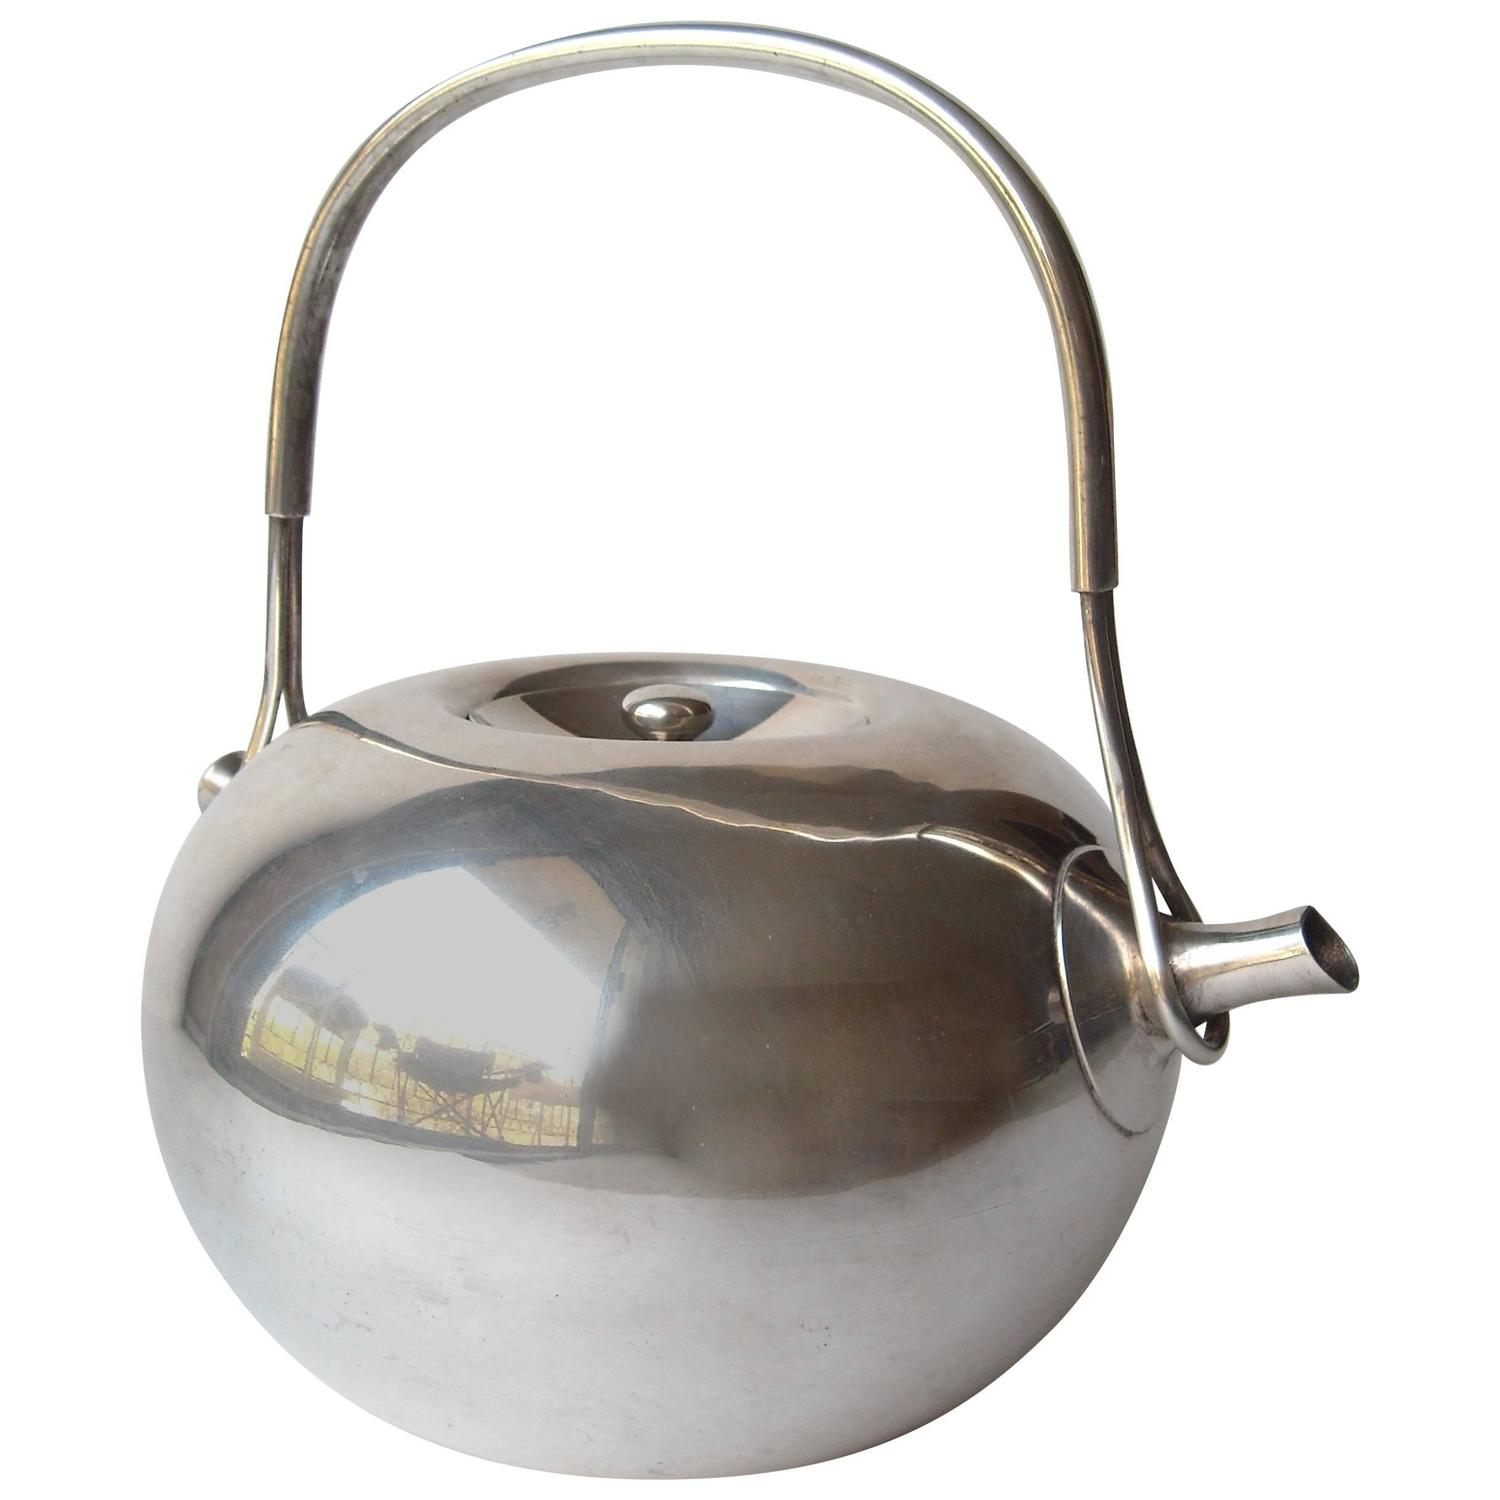 dansk tea kettle feecddf fee  - vivianna torun bulow hube dansk silver plate tea pot at stdibs